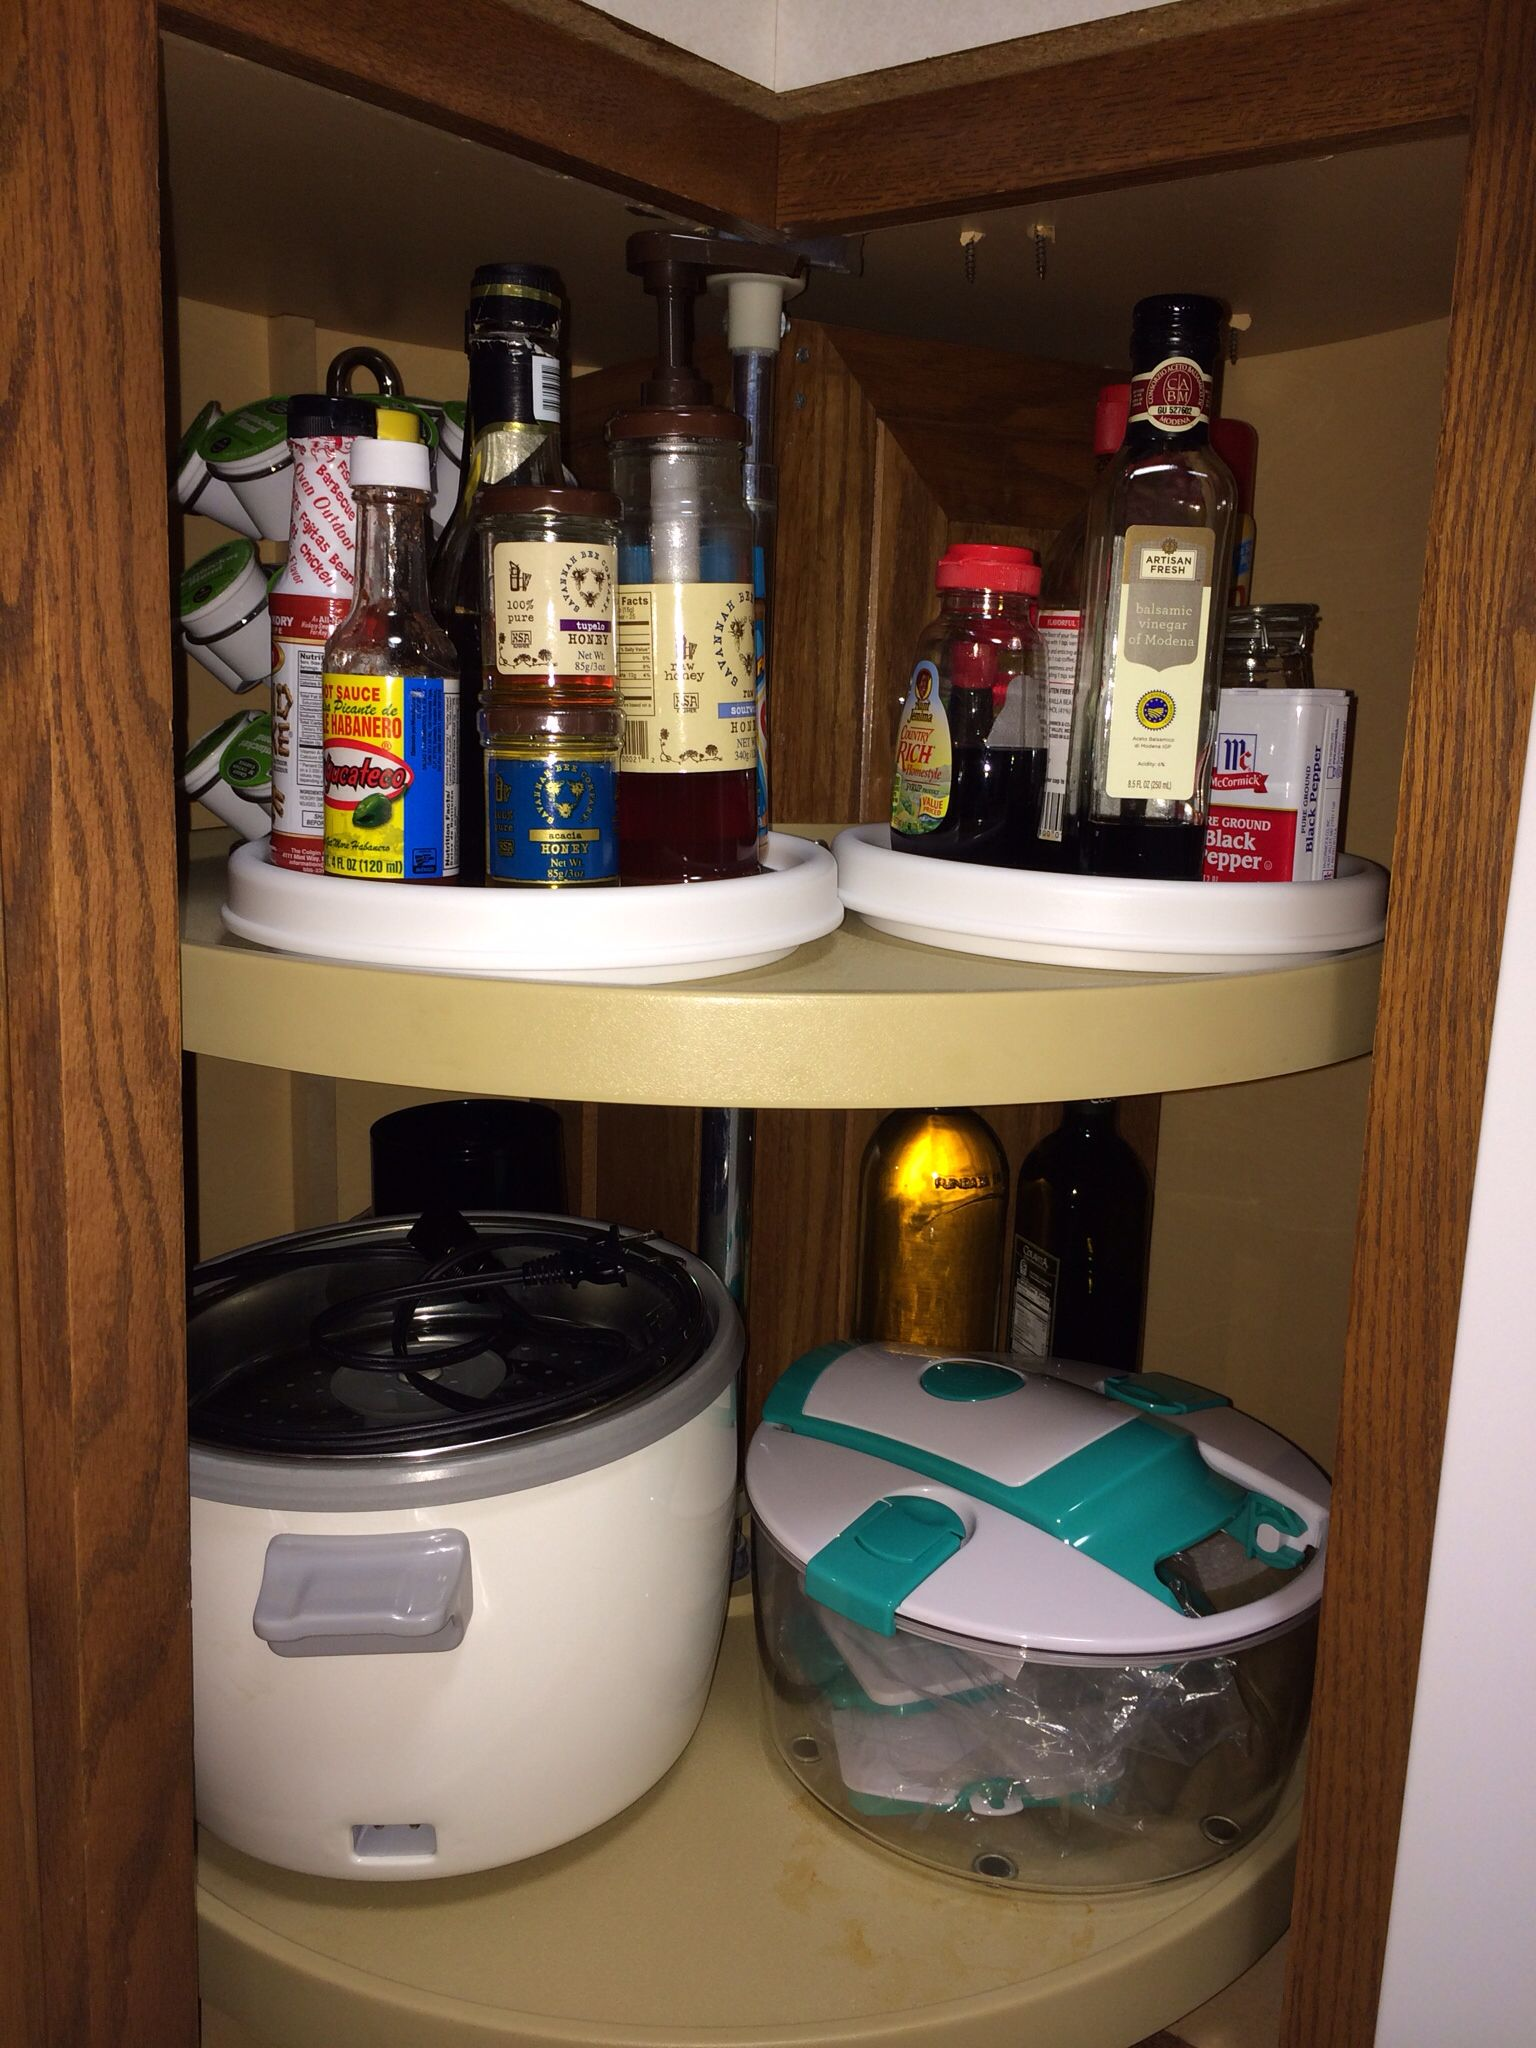 Corner Lazy Susan Turntable Kitchen Cabinet At My House We Call It The Super